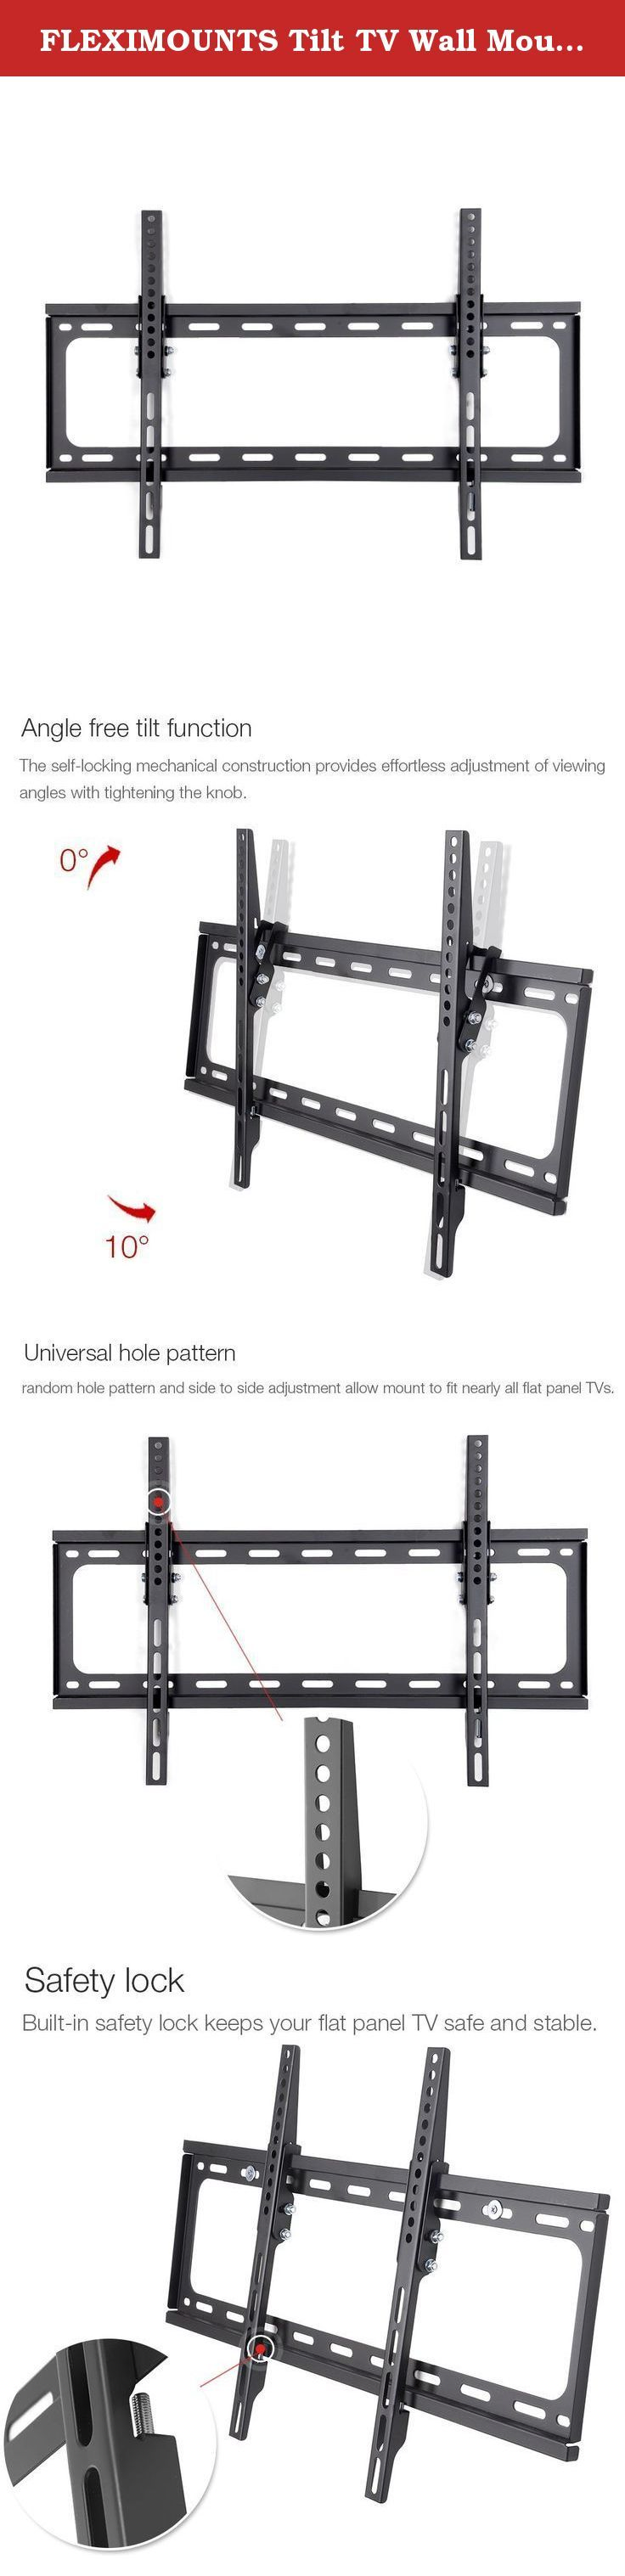 "FLEXIMOUNTS Tilt TV Wall Mount Bracket for most 32""-65"" LCD LED Plasma flat screen fits for most of Samsung Coby LG VIZIO Sharp Sony Toshiba Seiki Tvs. FLEXIMOUNTS LCD LED Plasma Flat Tilt TV Wall Mount Bracket Low Profile Fit for 32 37 40 42 47 50 55 60 65 TV Size w/ Bubble Level FLEXIMOUNTS Tilt TV wall mount is fit for 32''-65'' LED TVs up to 99lbs weight. It has great performance with high-quality cold-rolled steel plate but lower prices. Certified by UL GS, the security is…"